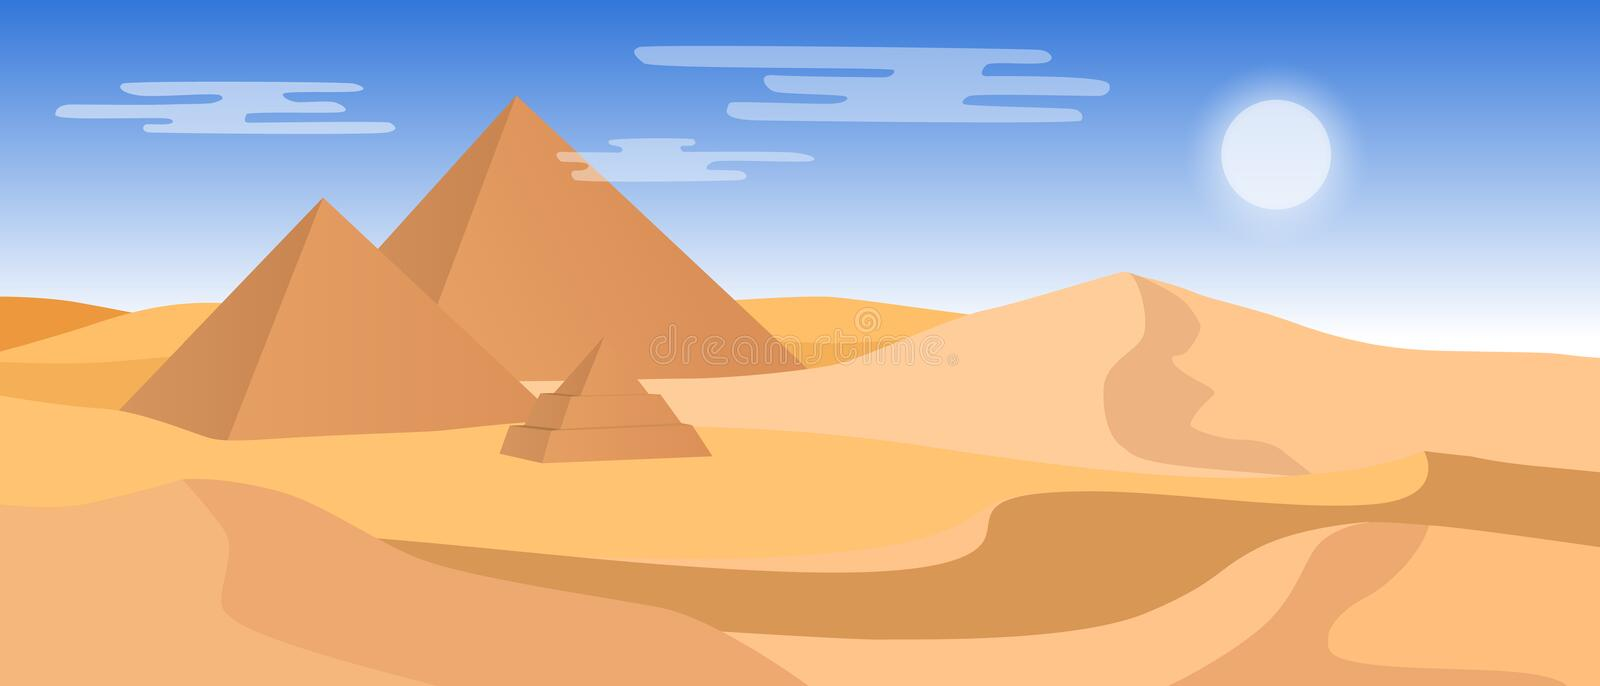 Beautiful widescreen desert landscape with yellow sand dunes and pyramids stock illustration